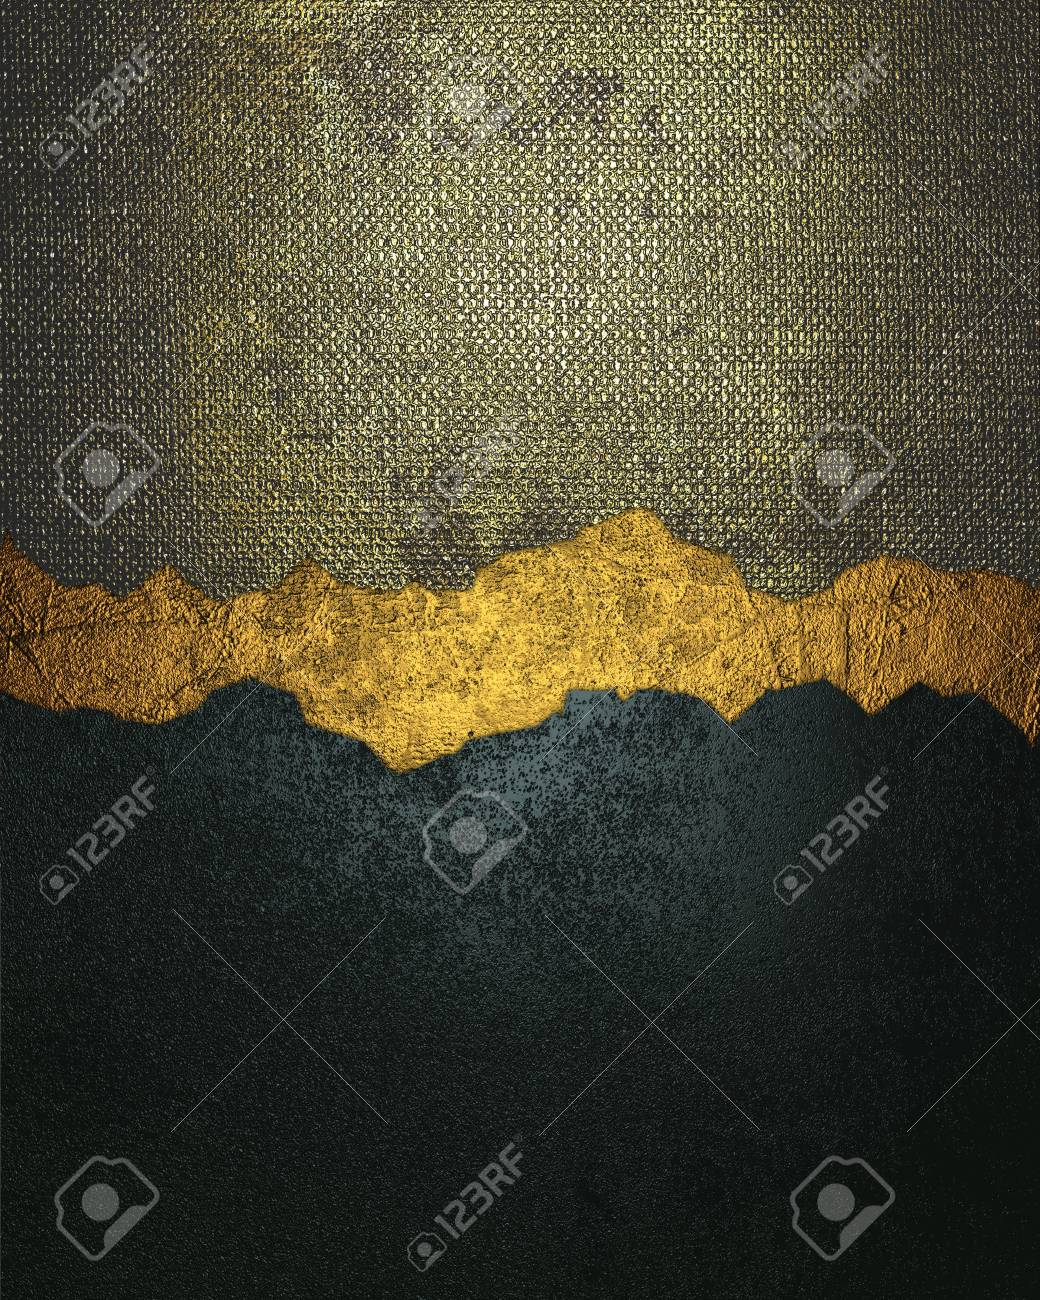 Grunge blue and gold metallic texture with crack  Element for